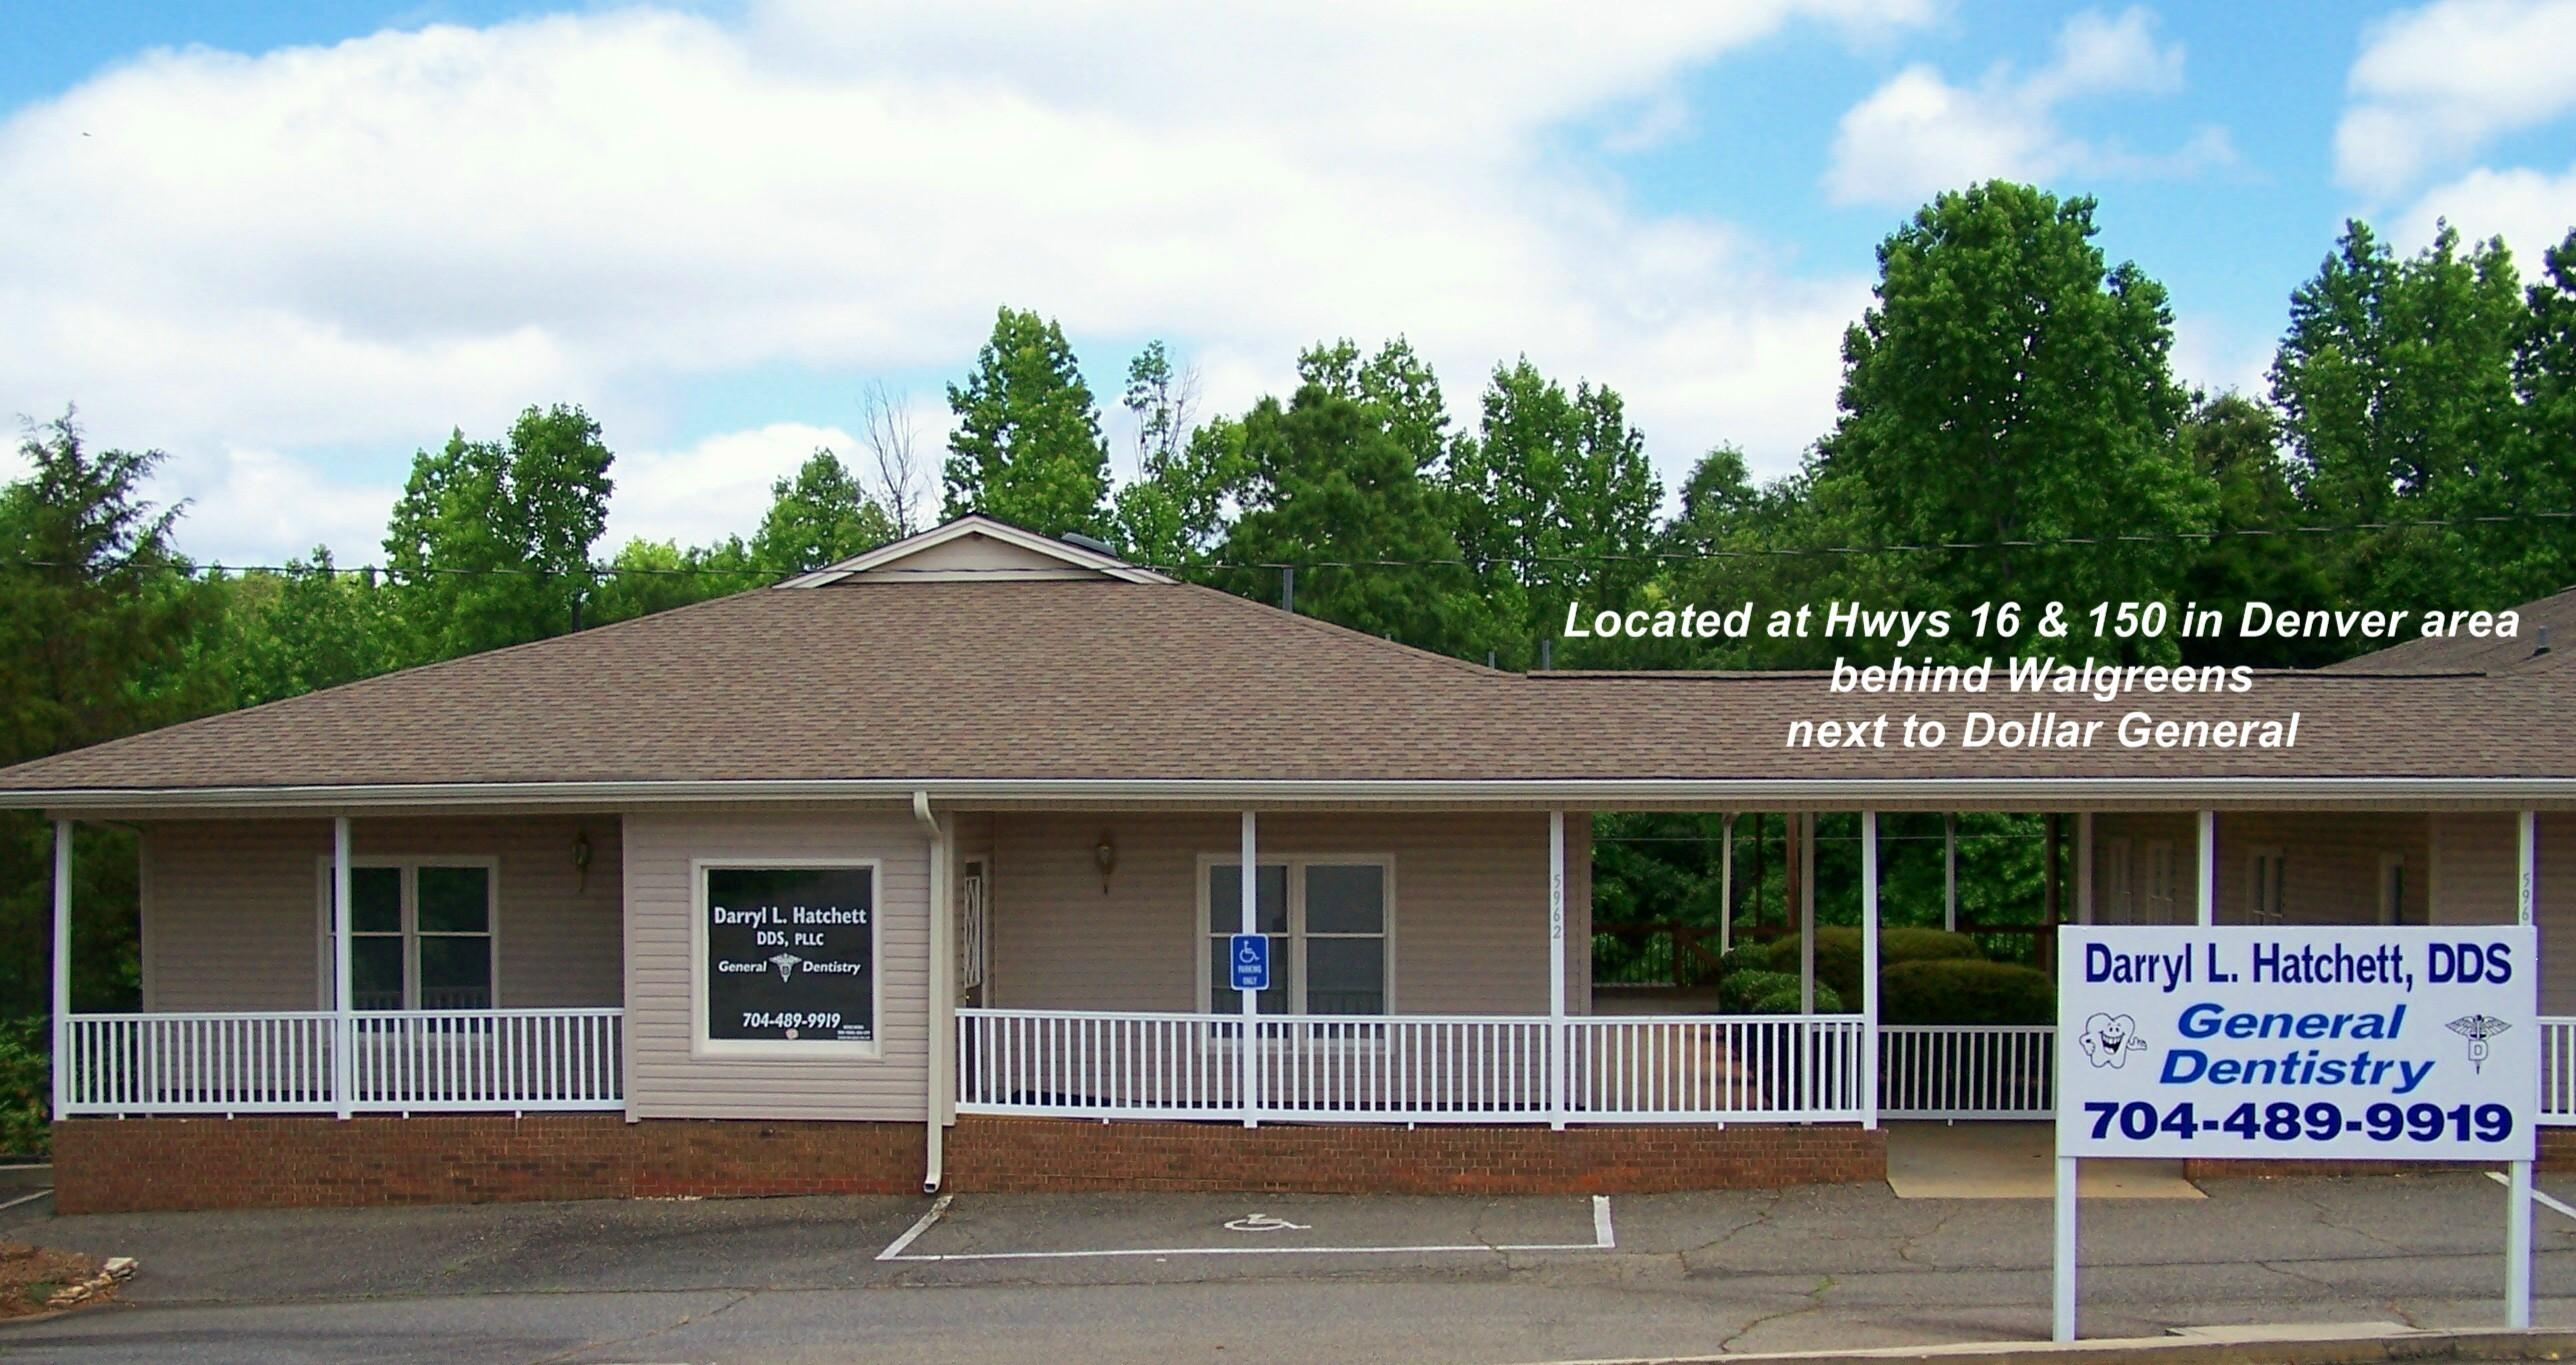 dentist maiden nc dr darryl hatchett dds office gallery our office is located at the intersection of highway 150 and business highway 16 behind walgreens and next to dollar general